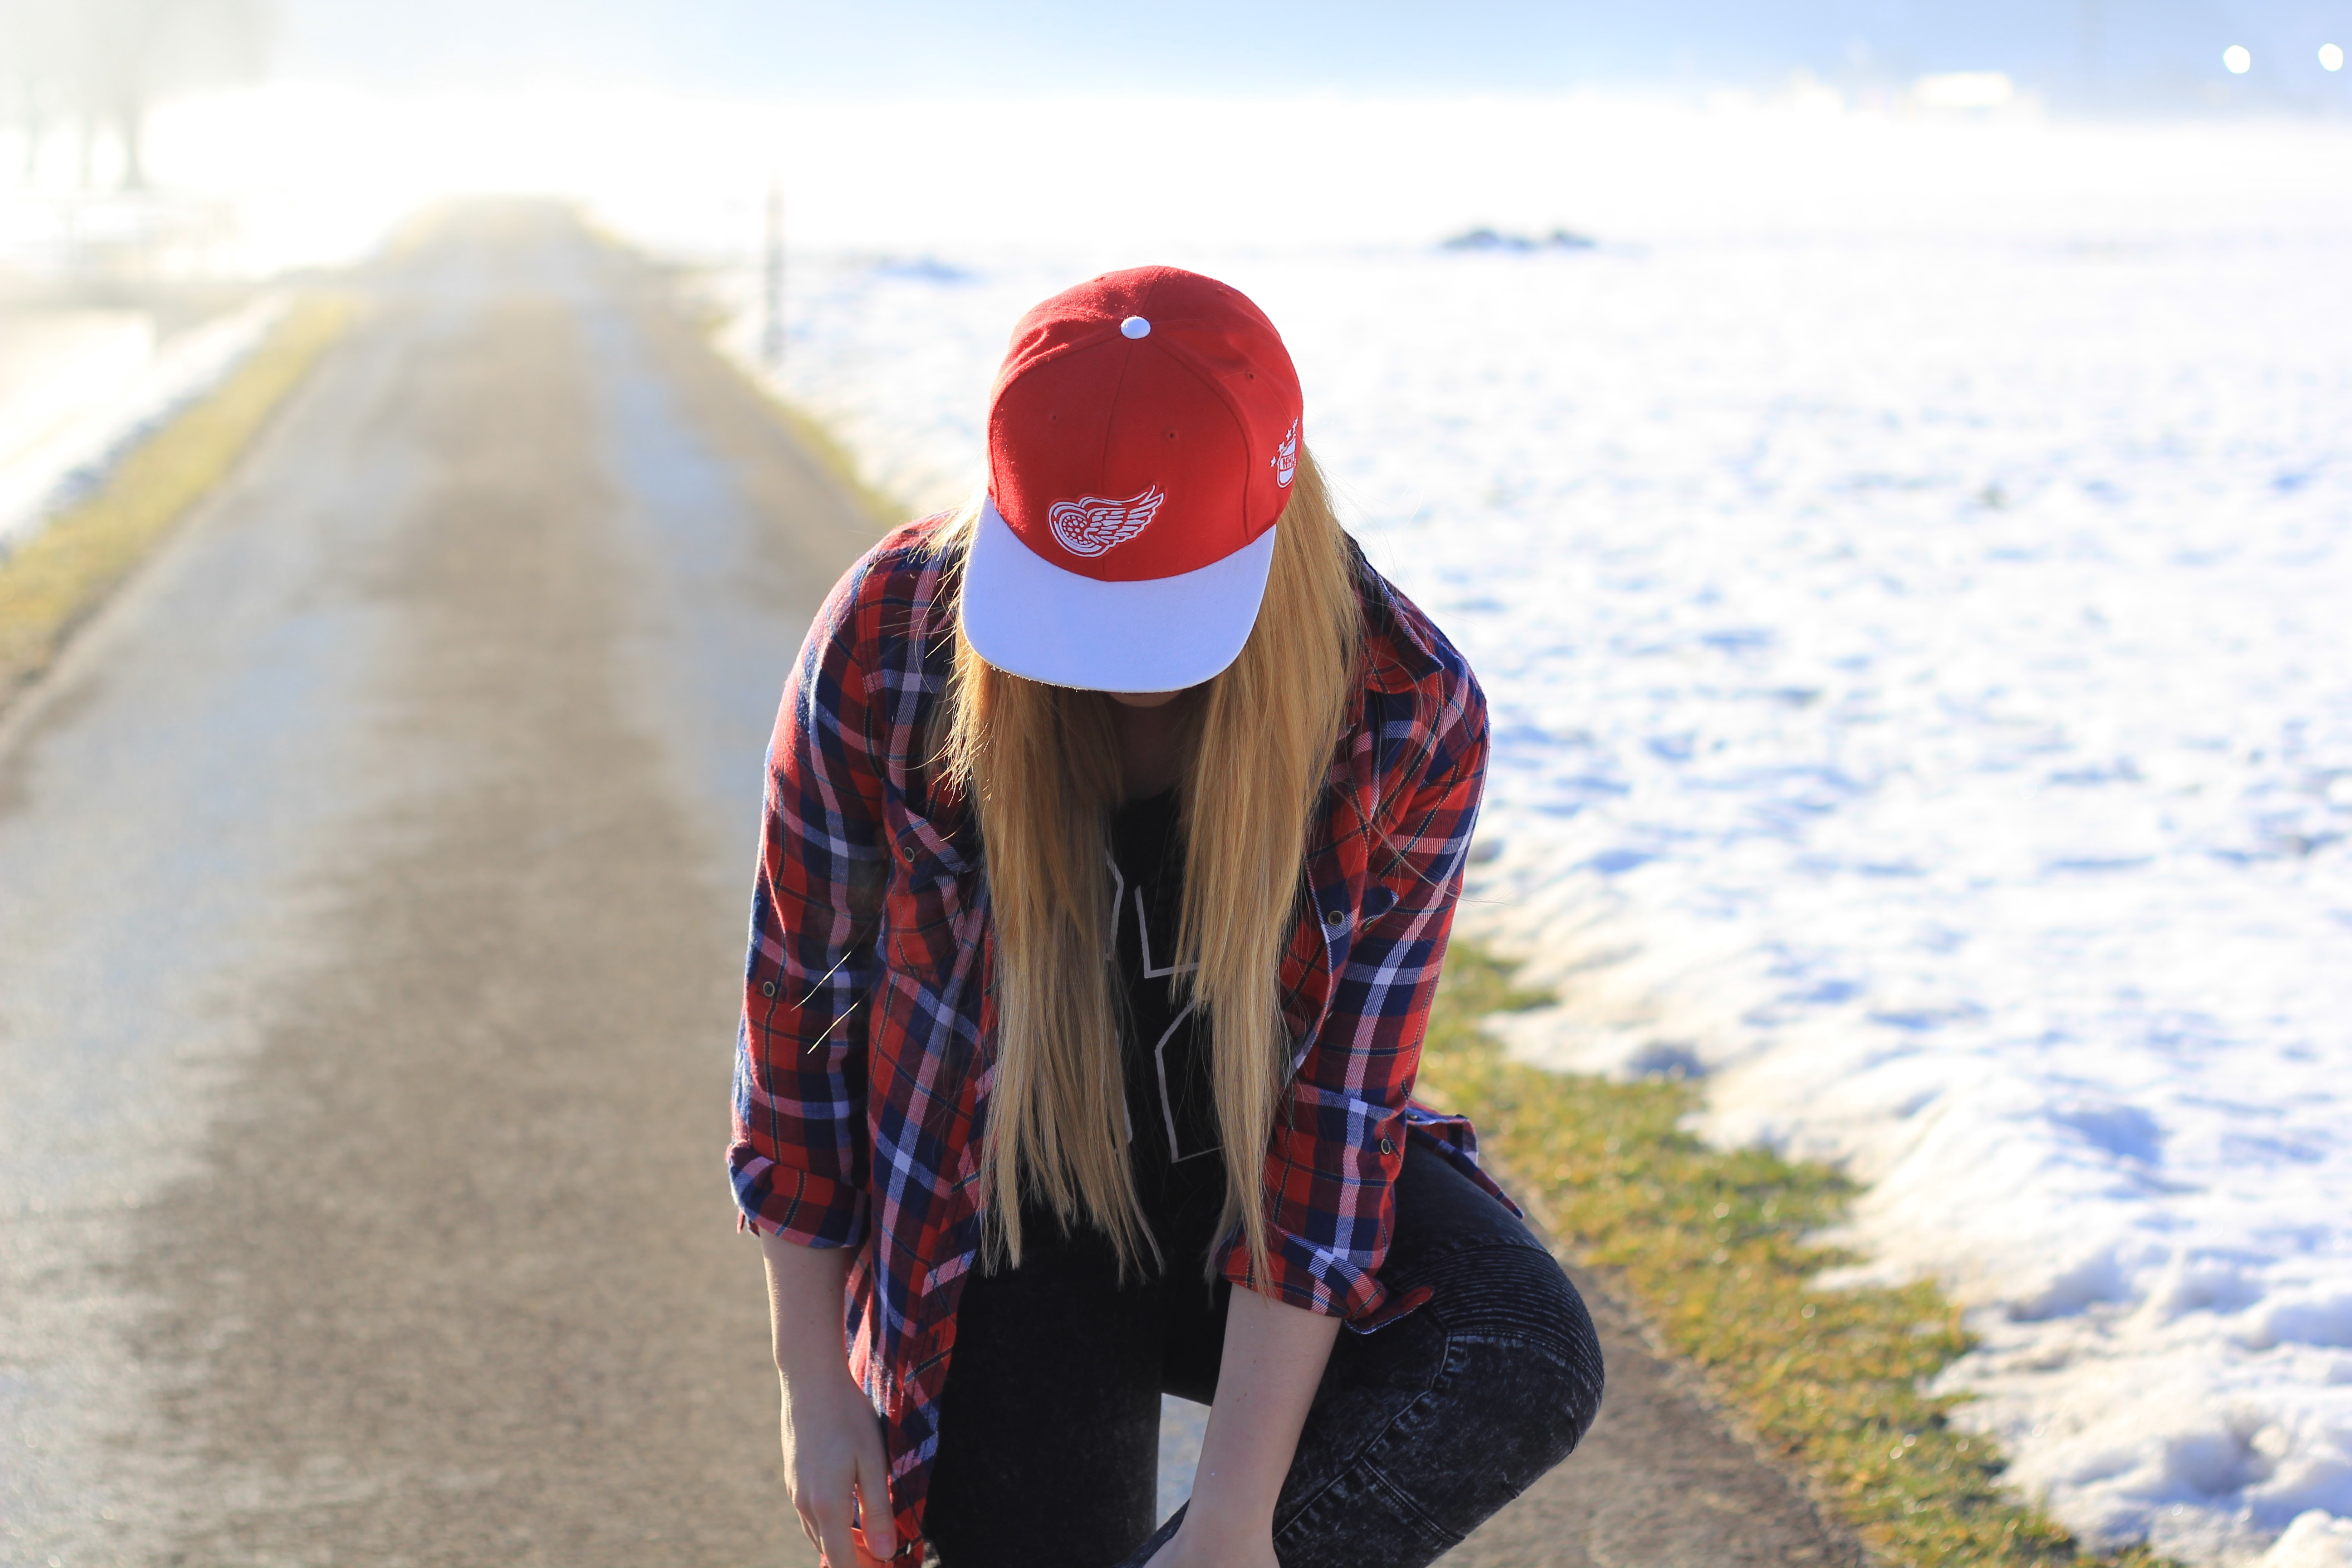 Photo Via: https://unsplash.com/photos/zTgFtM6M9Gs,, A woman in a plaid shirt and baseball cap kneels on a path aside snow